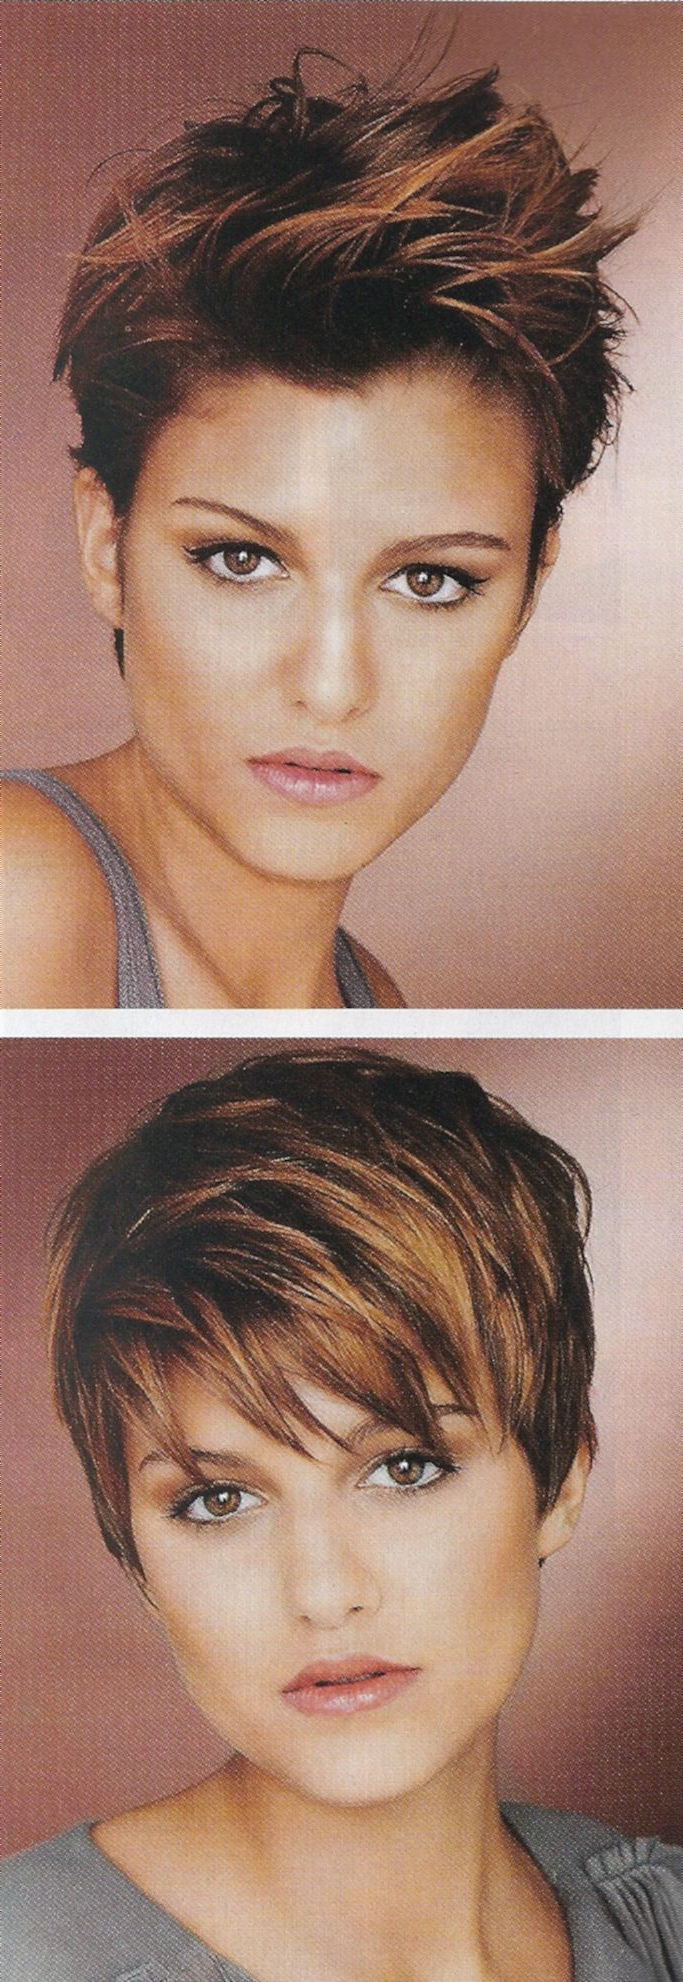 Long Pixie Cut, Best Ideas Of Pixie Hairstyles Inside Sassy Pixie Hairstyles (View 13 of 20)